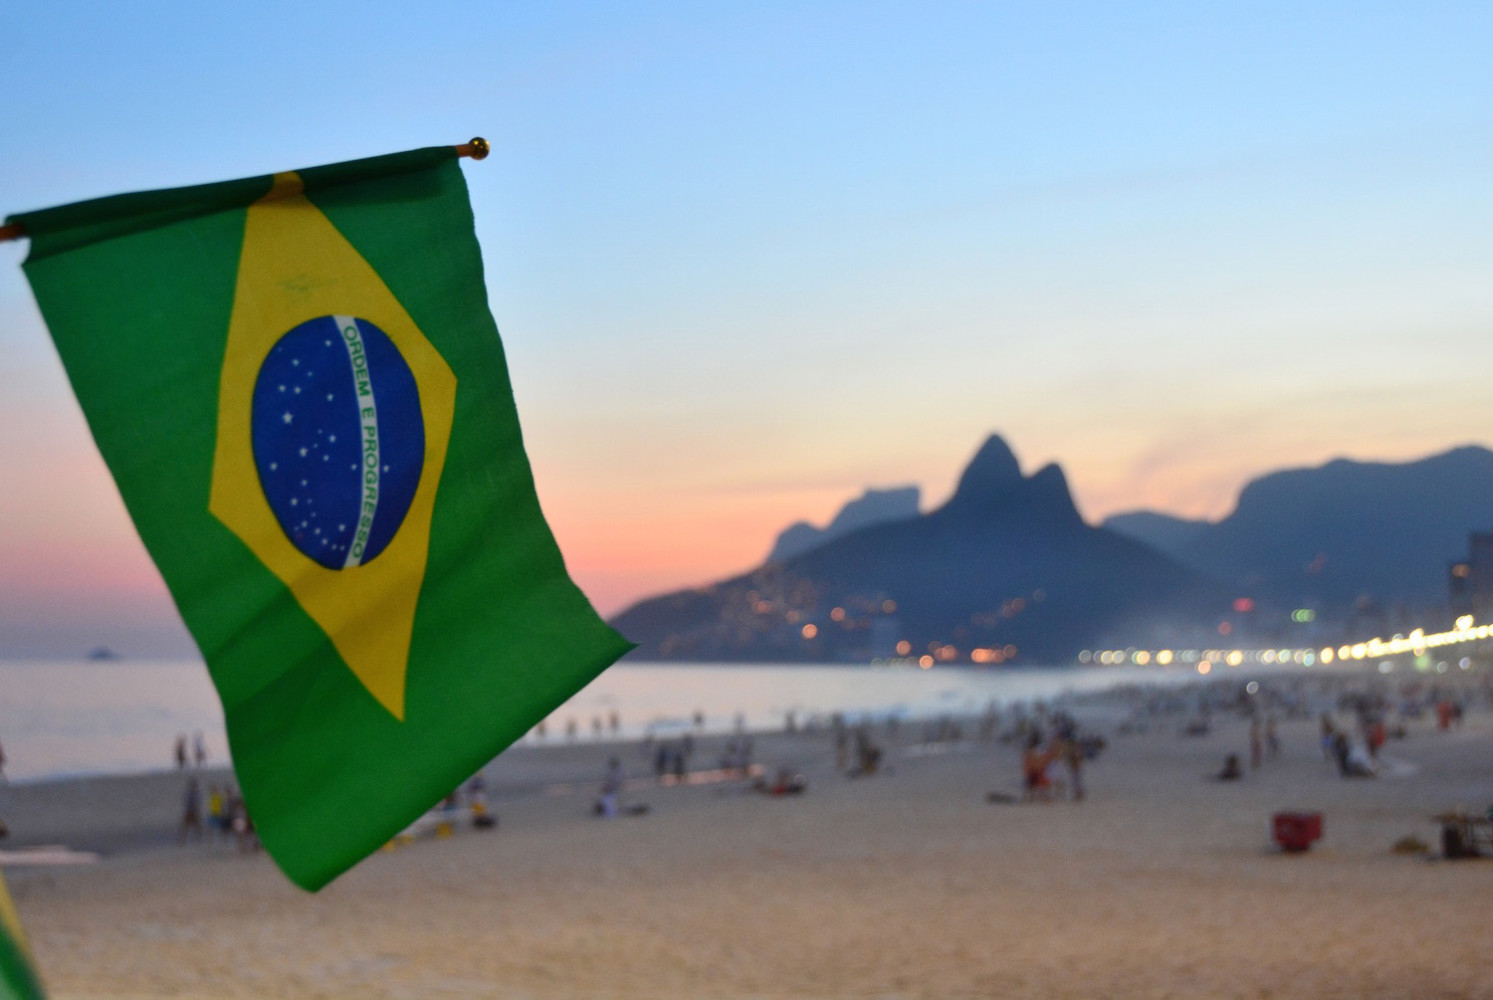 30 Pictures That Will Make You Want to Visit Brazil